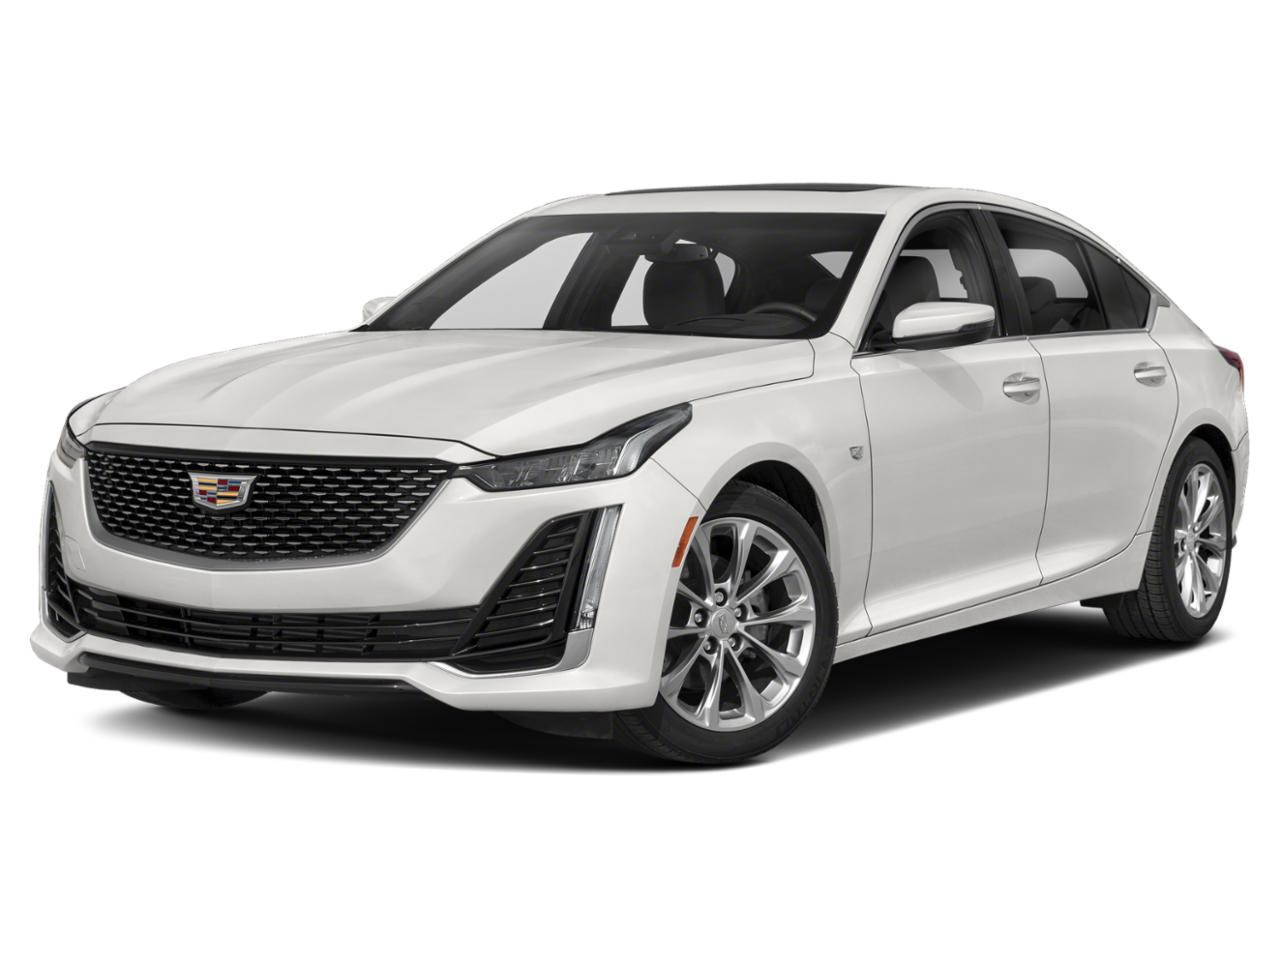 2021 Cadillac CT5 Vehicle Photo in Libertyville, IL 60048